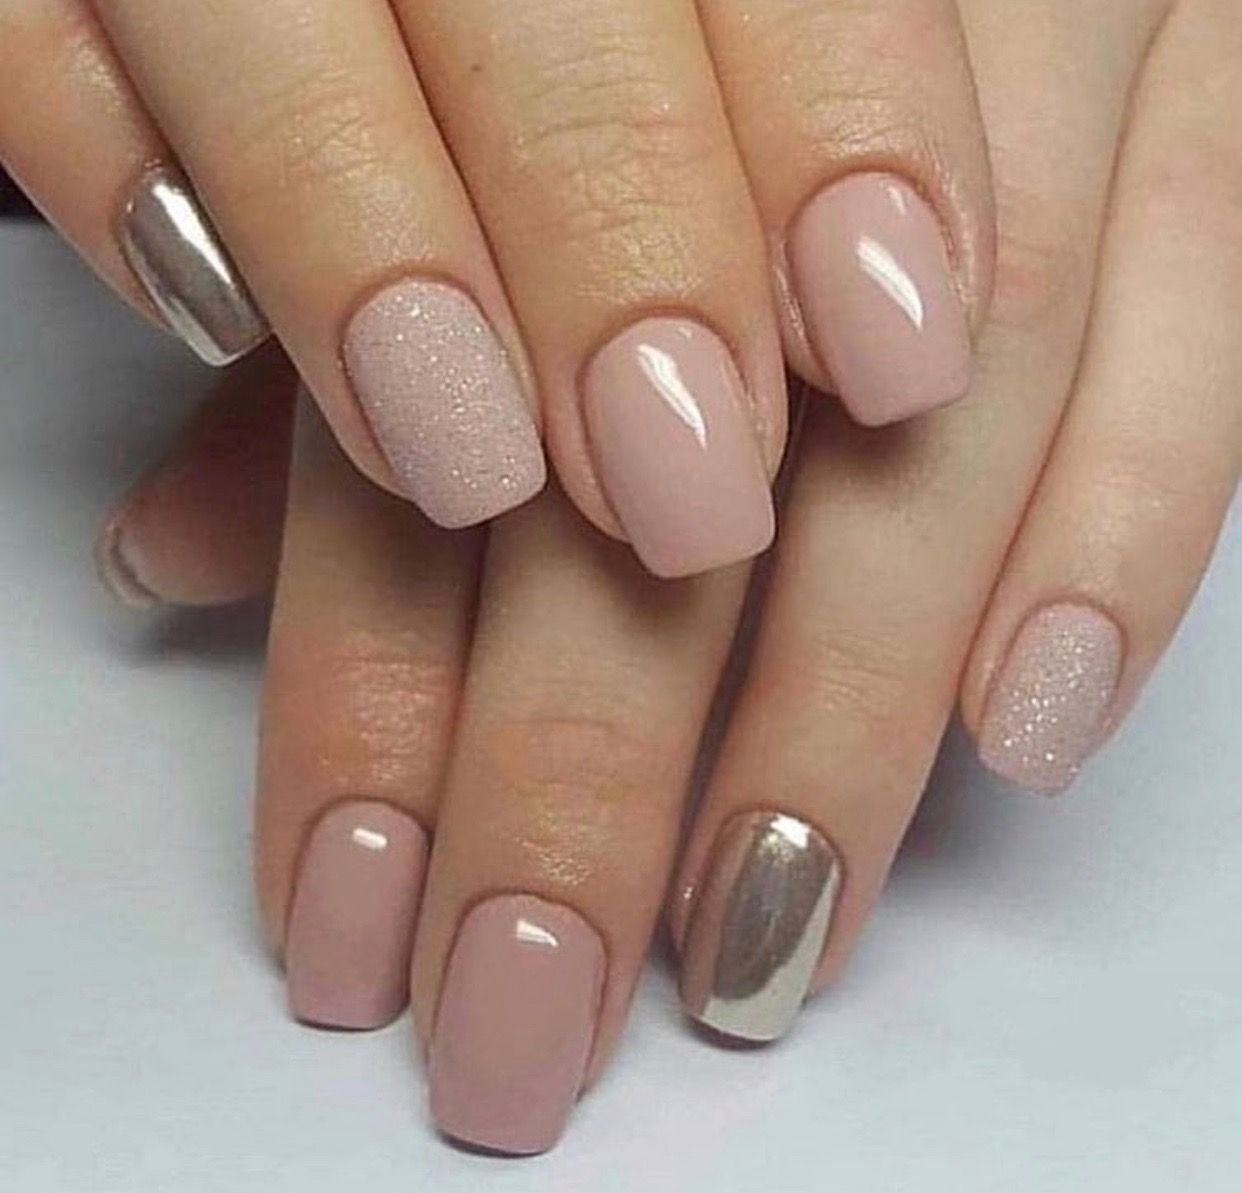 Art Design Gel Acrylic: Nail Ideas And Inspiration. Nails Looks Including Acrylic